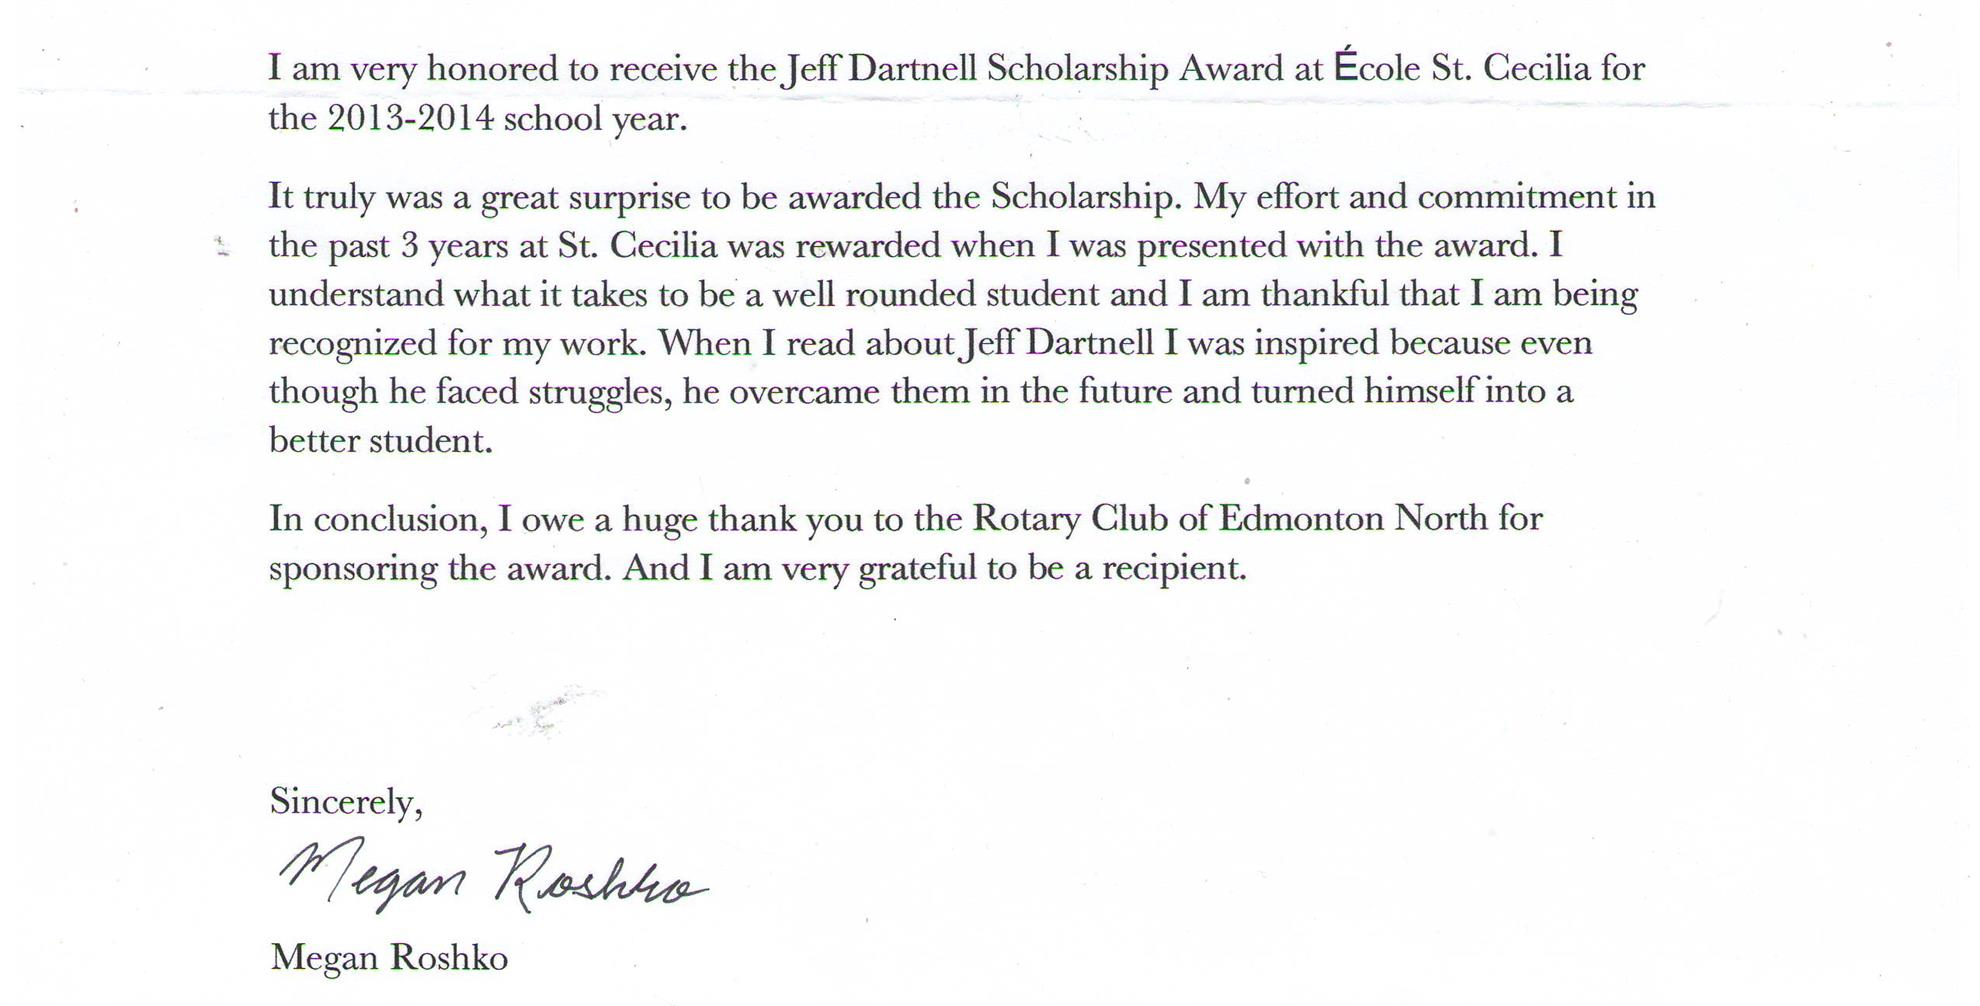 Jeff Dartnell Scholarship Award ThankYou – Thank You Letter for Scholarship Award